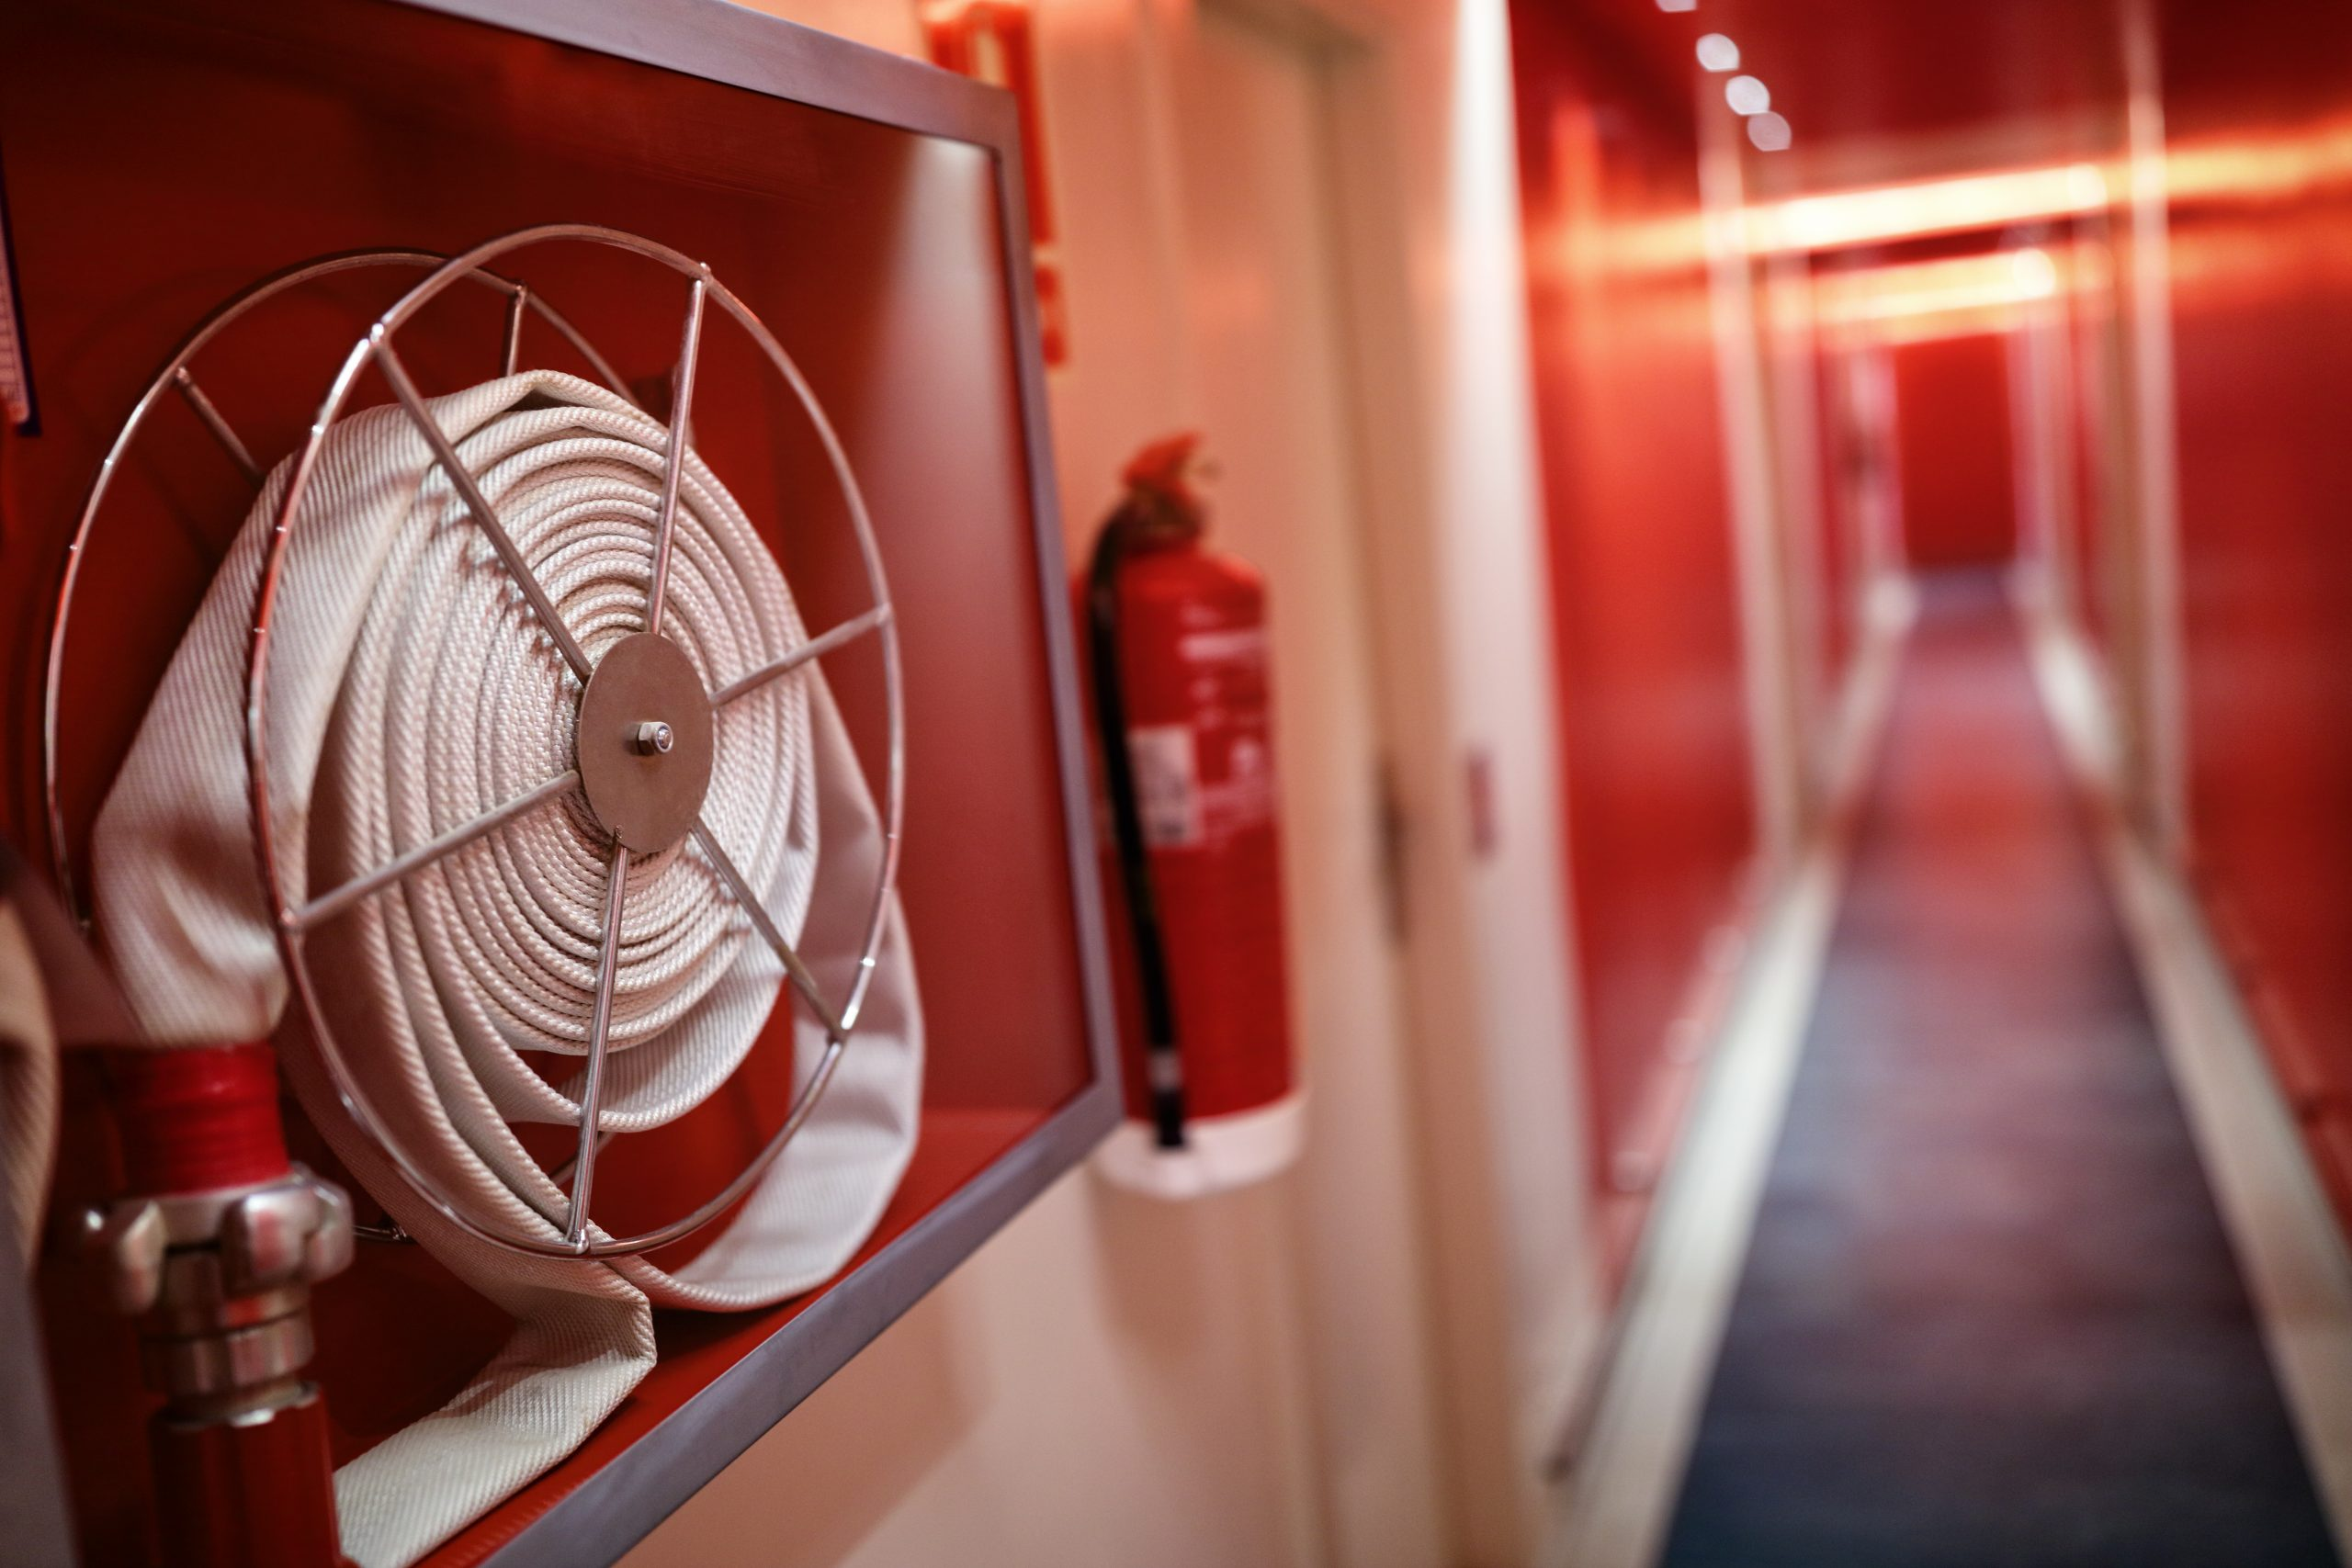 Fire extinguisher and hose reel in hotel corridor